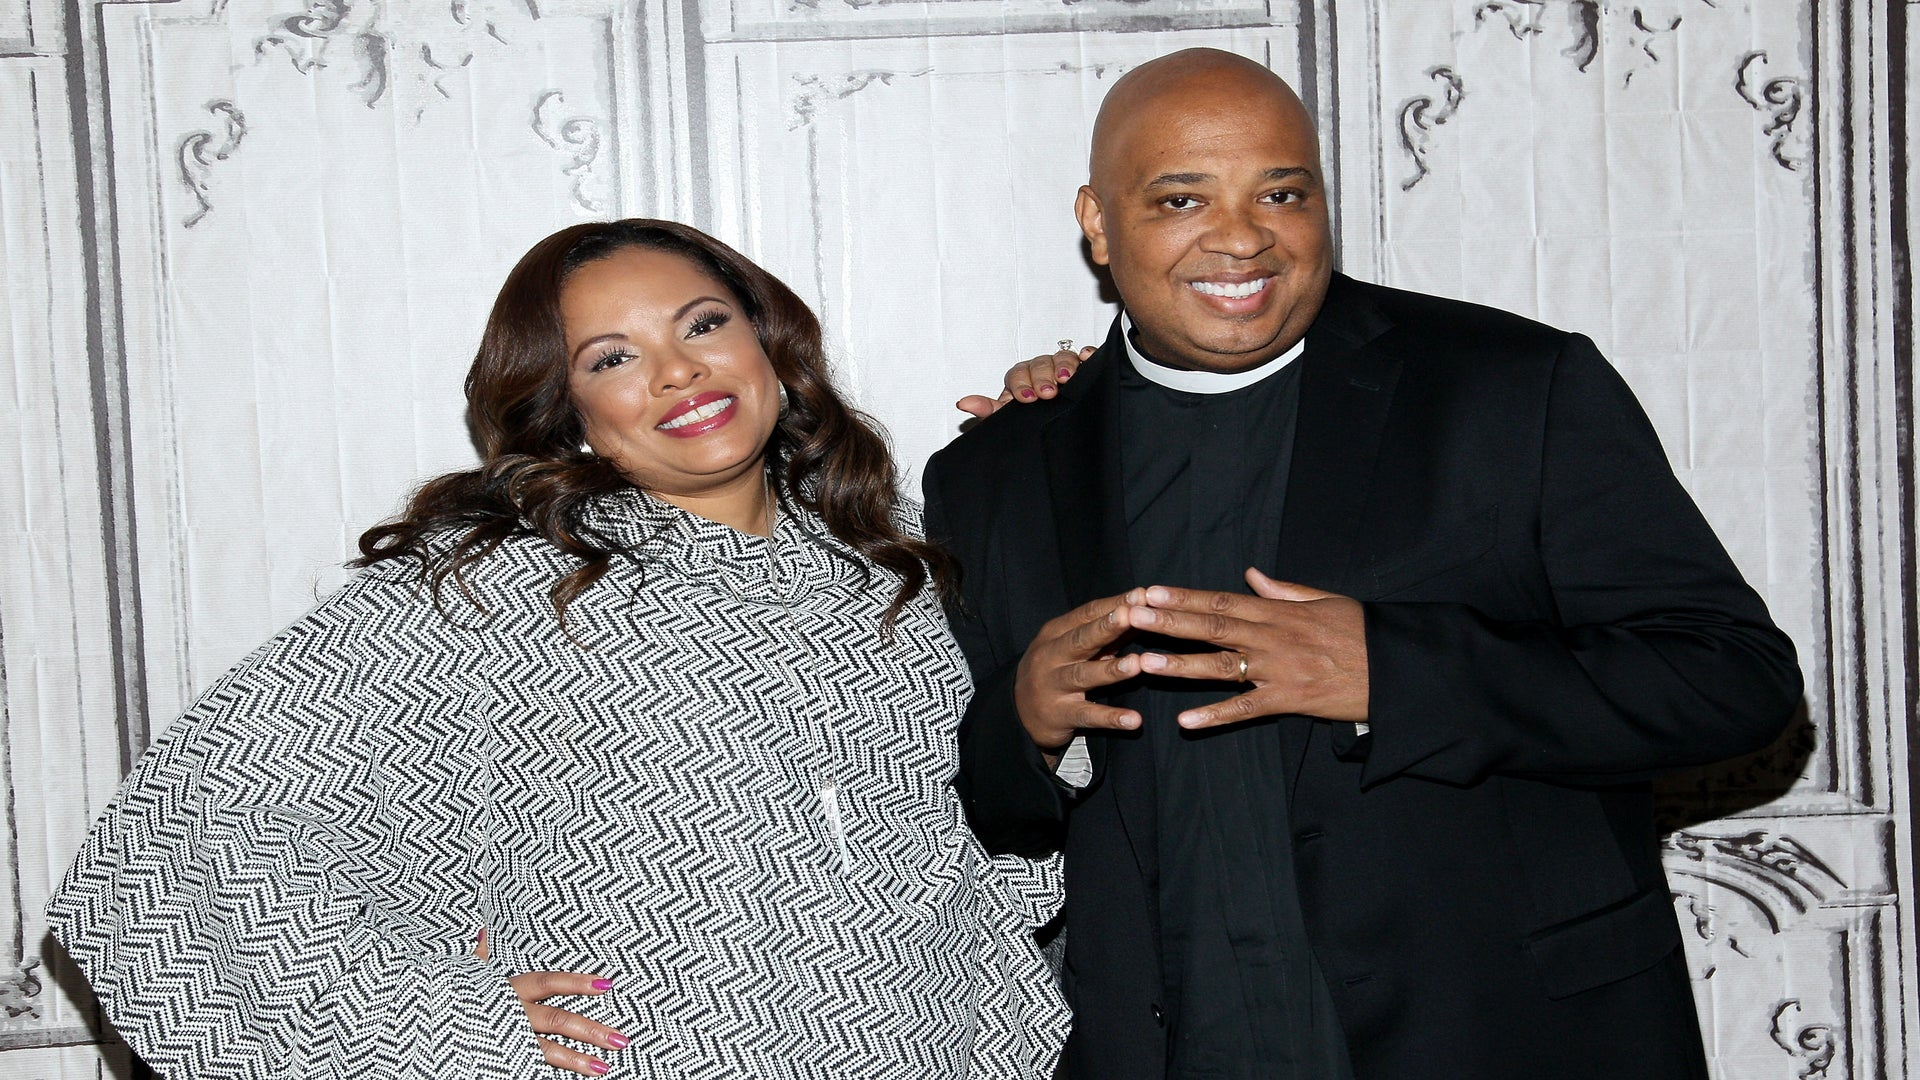 Rev Run's Wife Justine Simmons Has The Perfect Advice For Balancing BeingA Girl Boss AND A Supportive Spouse